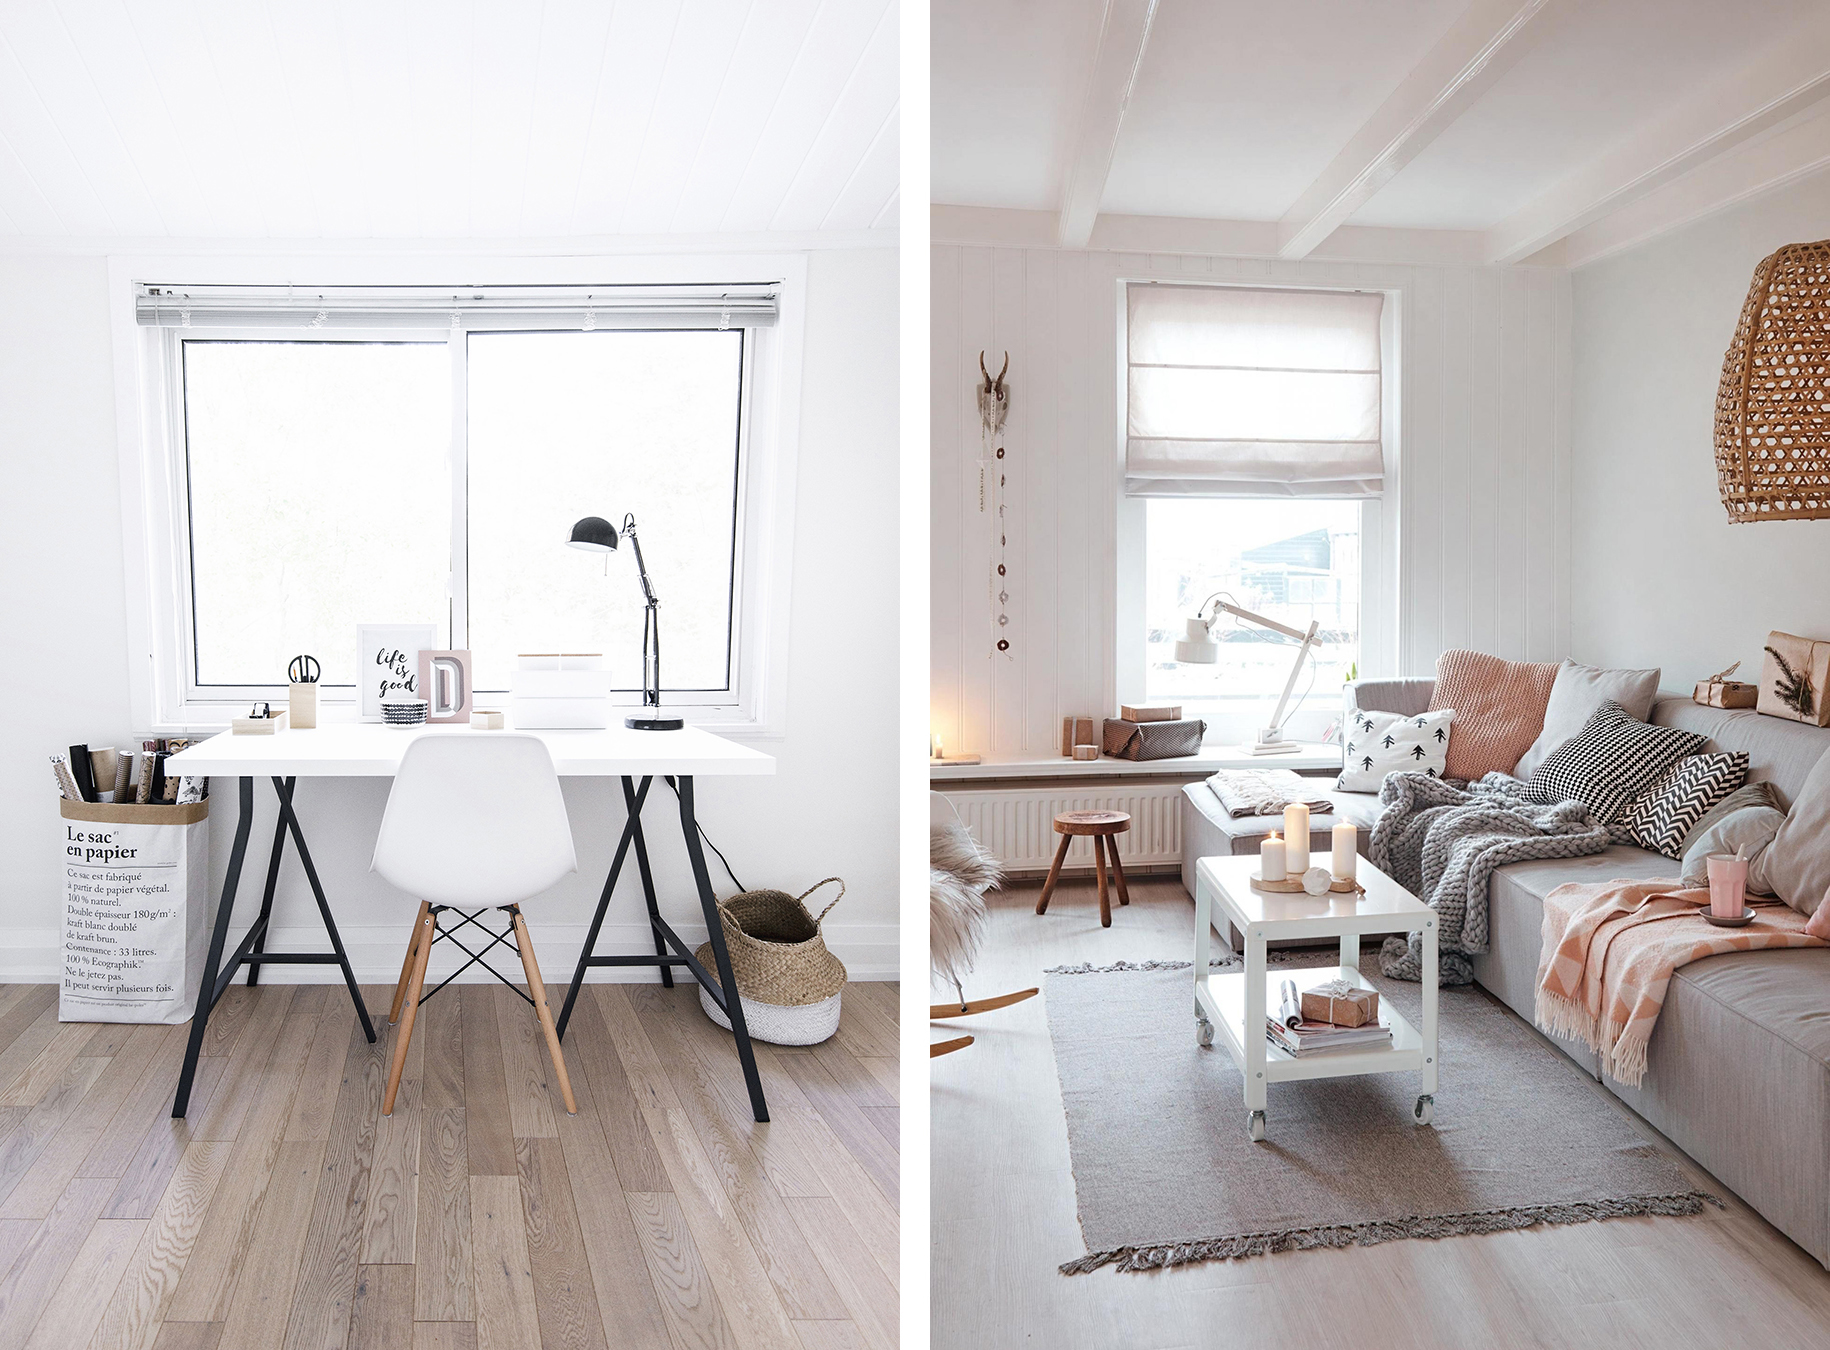 ... Scandinavian interior with neutral and pastel colors - Top 10 tips for  adding Scandinavian style to